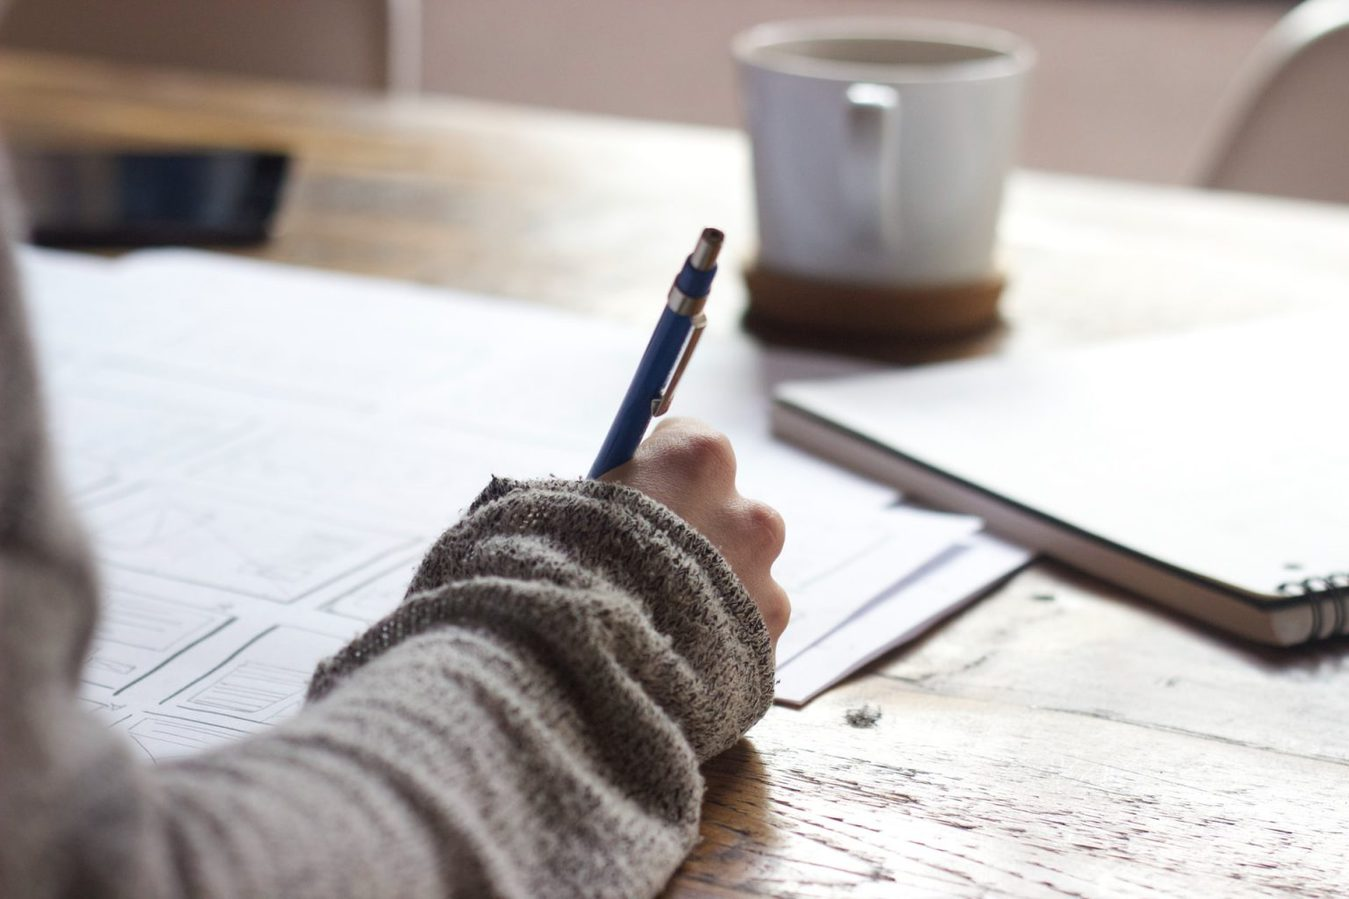 Person writing in a journal on a table